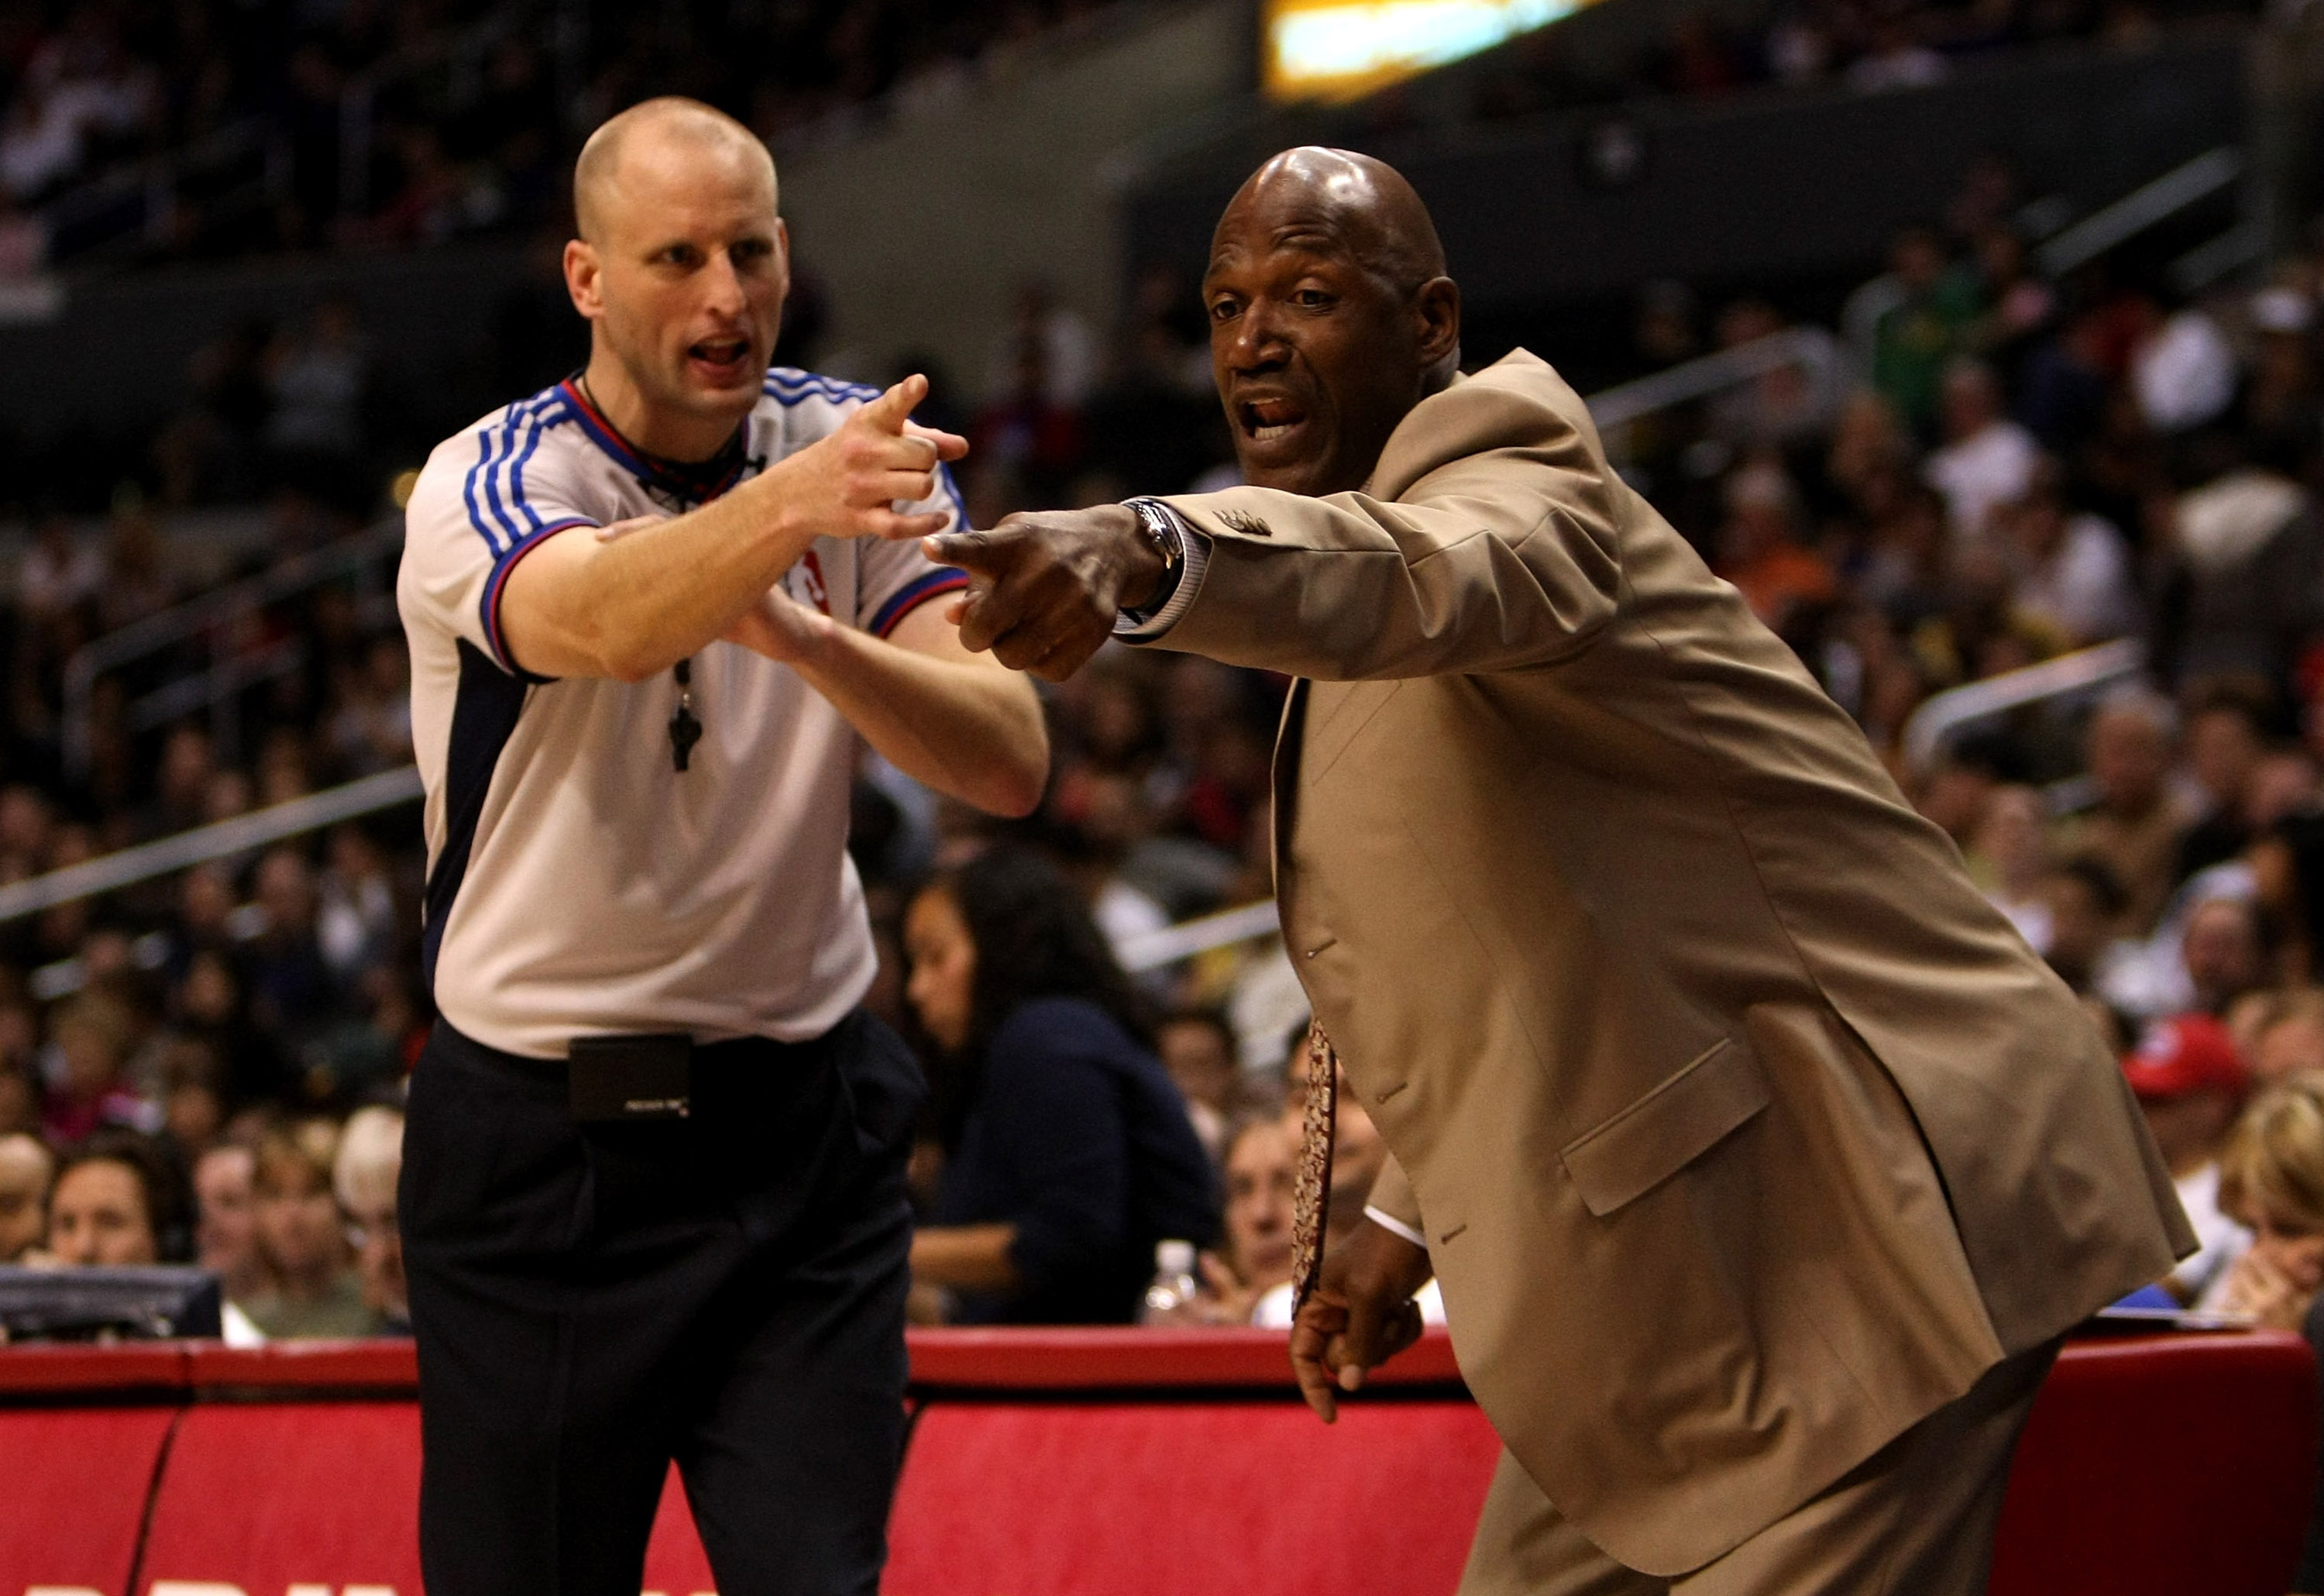 LOS ANGELES, CA - JANUARY 11:  Head coach Terry Porter of the Phoenix Suns argues with referee Eric Dalen during the game with the Los Angeles Clippers on January 11, 2009 at Staples Center in Los Angeles, California.  The Suns won 109-103.   NOTE TO USER